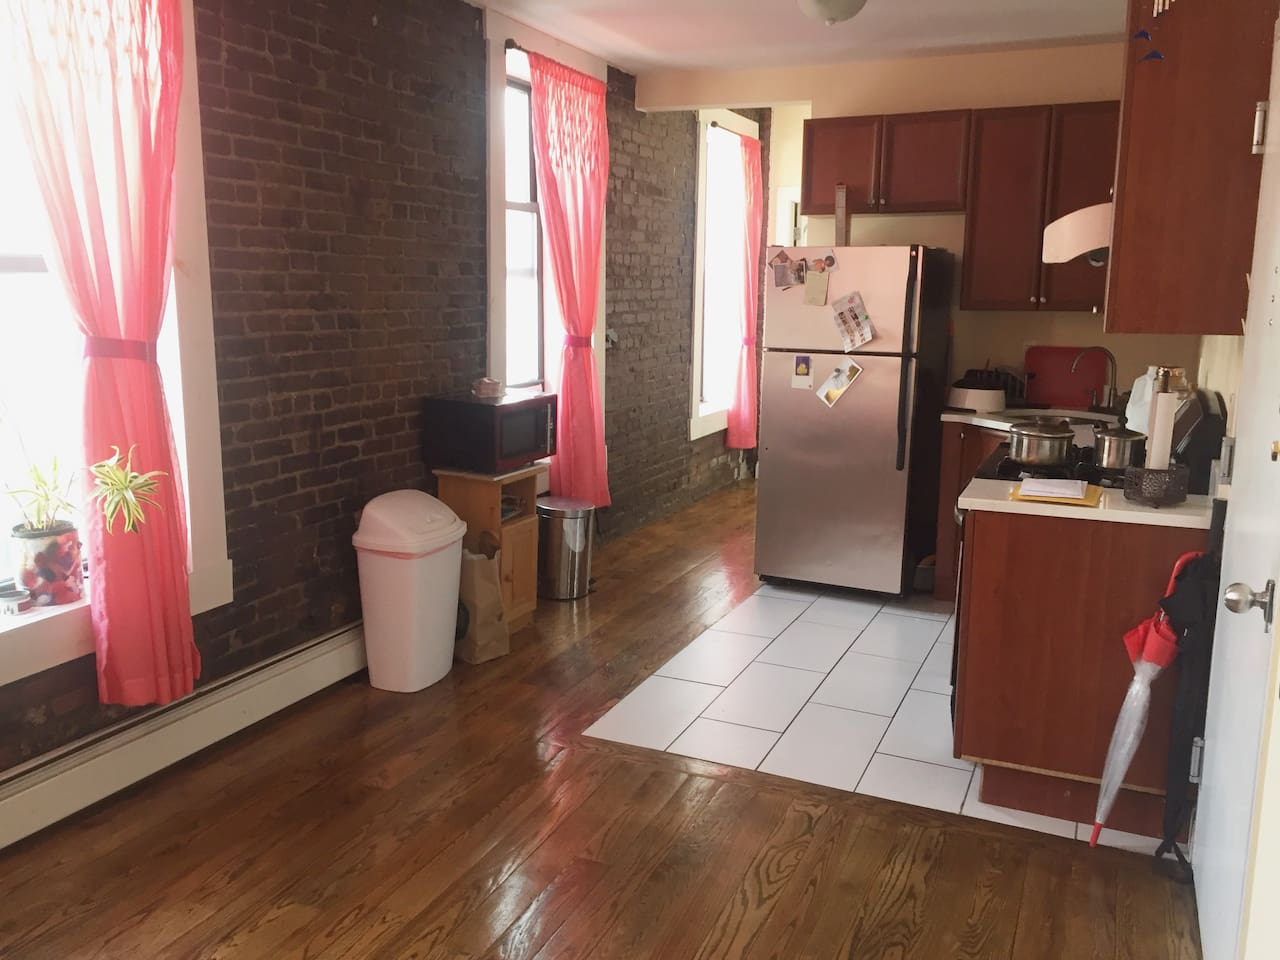 Beautiful exposed brick and lots of space in the common living area.  Windows offer a beautiful view of Harlem.  If you're here during the NYC Marathon, the runners run right in front of these windows!!